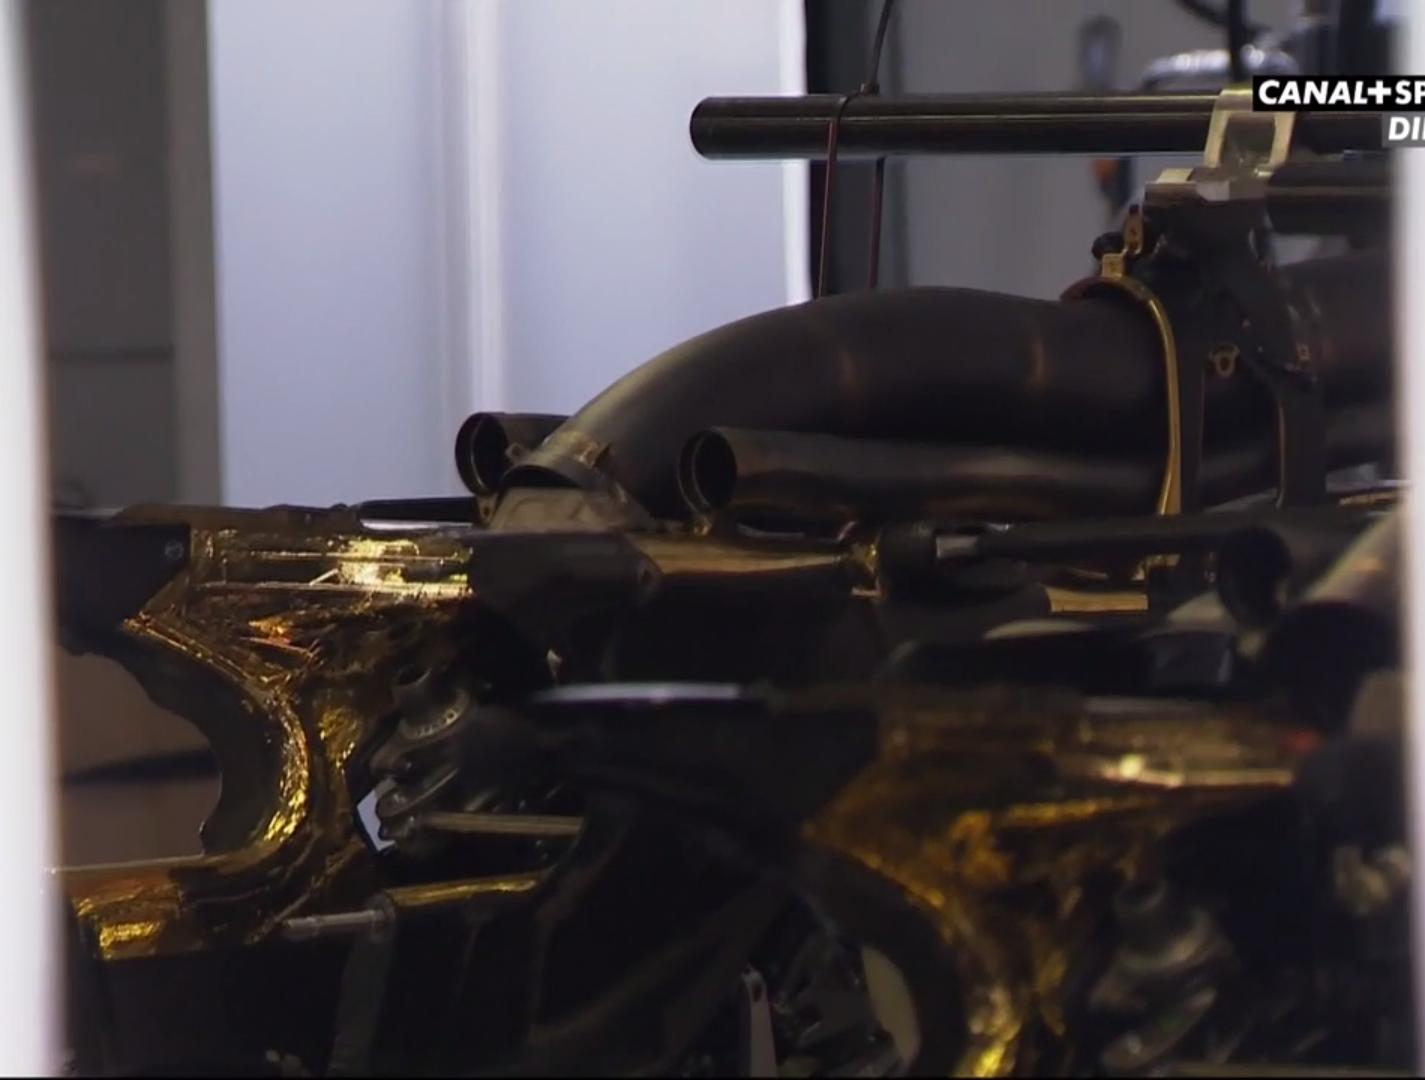 sf16-h-gearbox